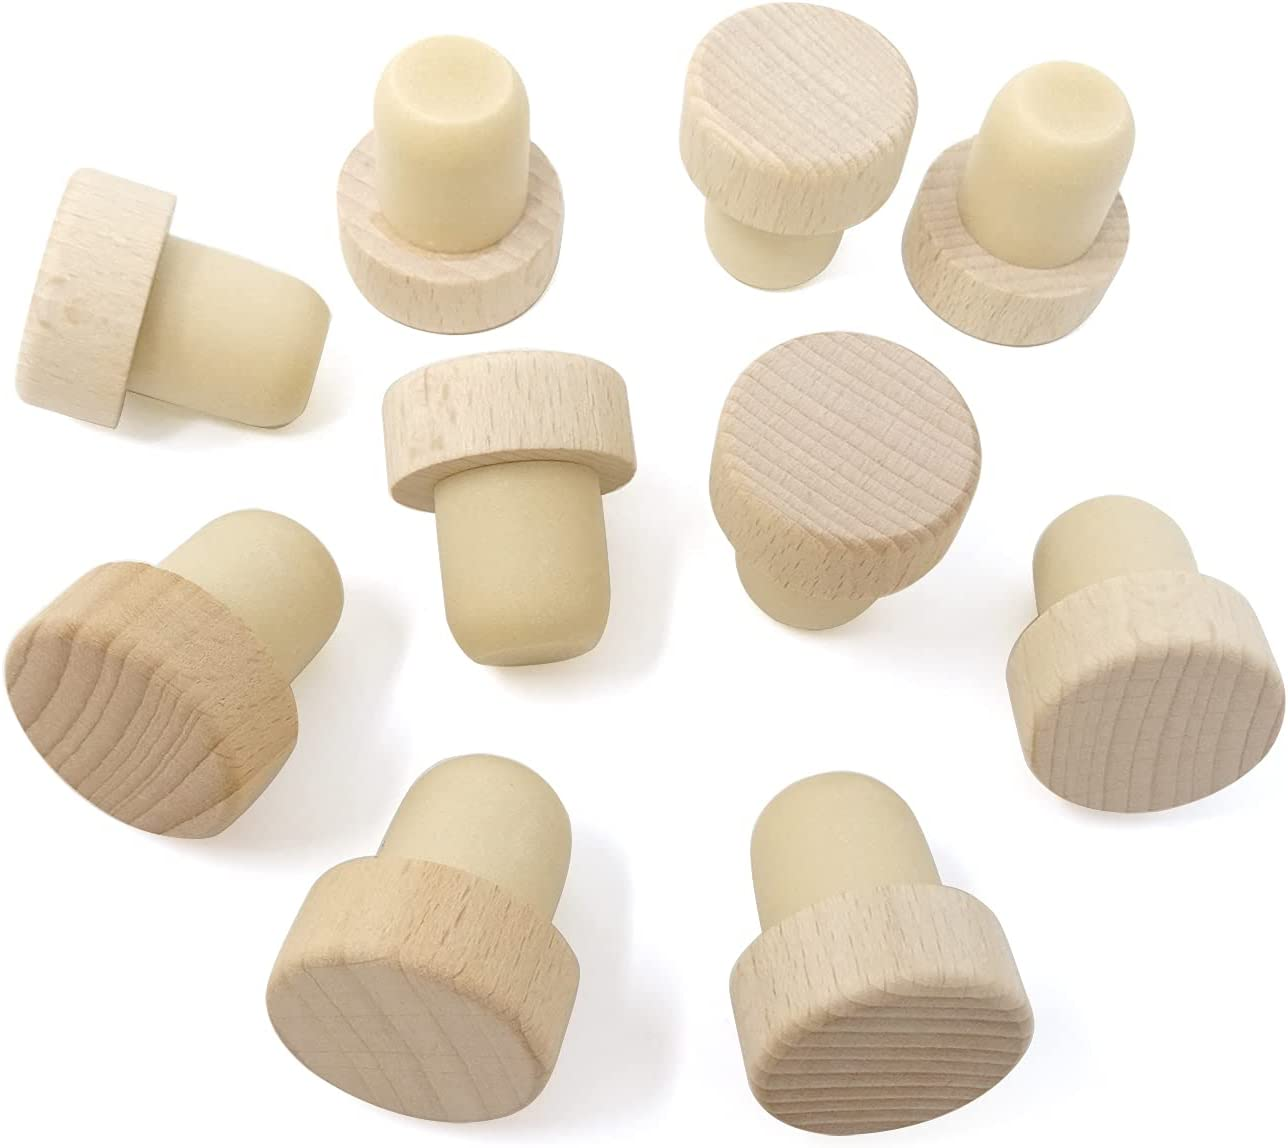 Honbay 10PCS Free shipping on posting reviews Wine Stoppers Bottle Cor Corks T-plug Special price